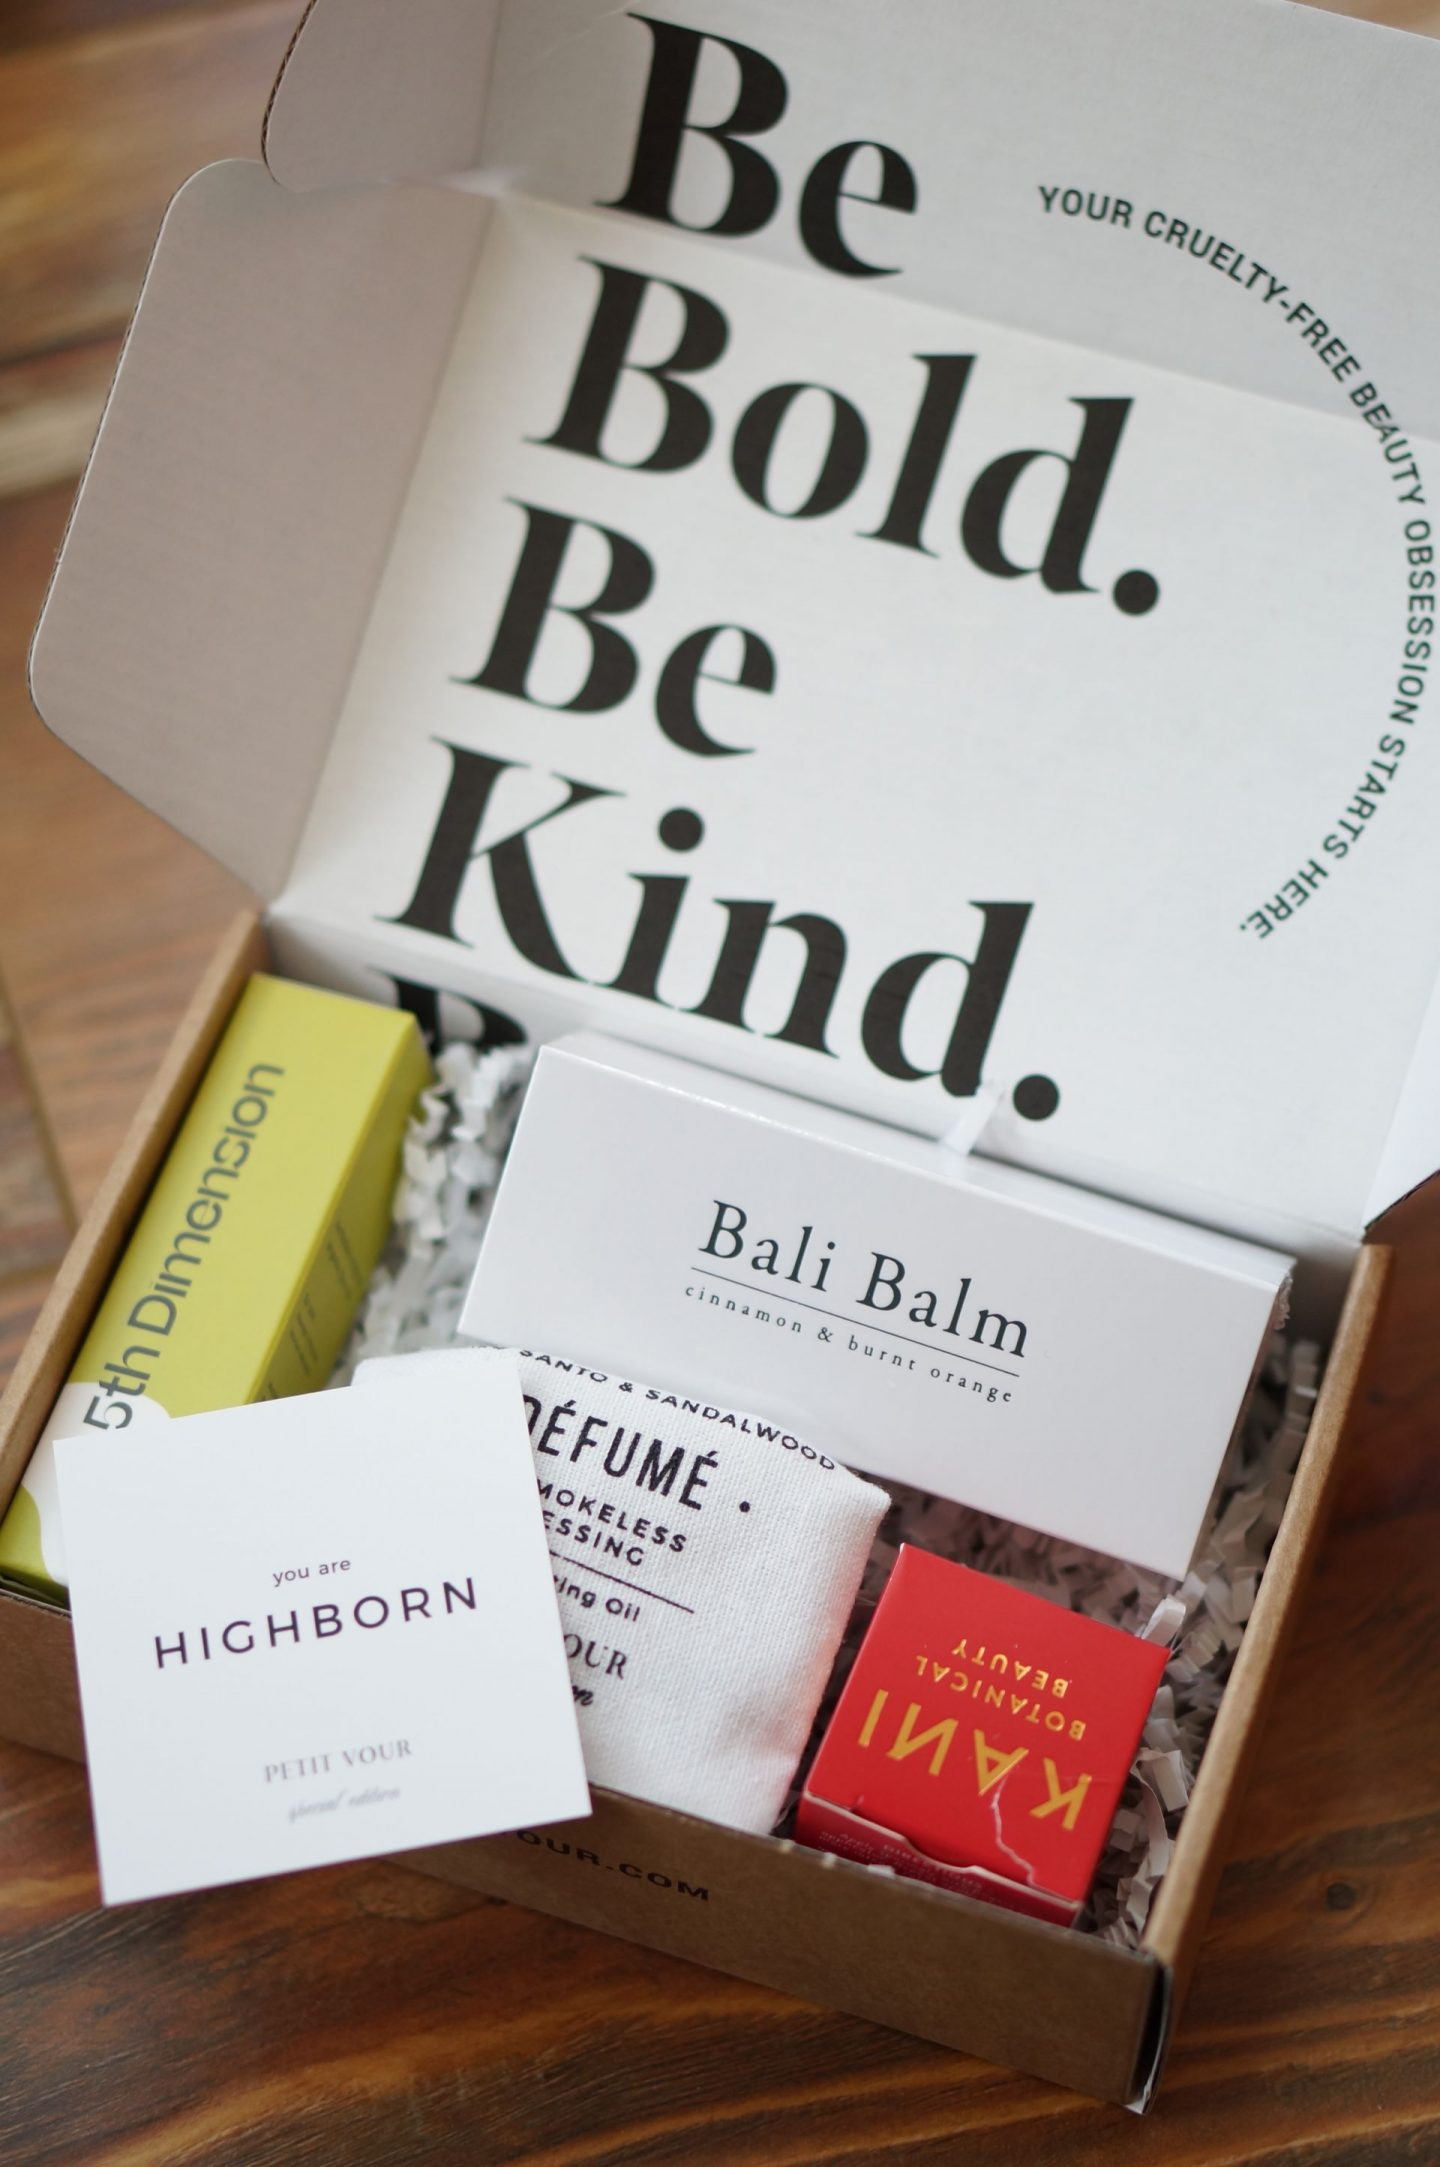 NC blogger Rebecca Lately shares her Petit Vour December 2019 box. Check it out for a box chock full of skincare benefits and cruelty free beauty